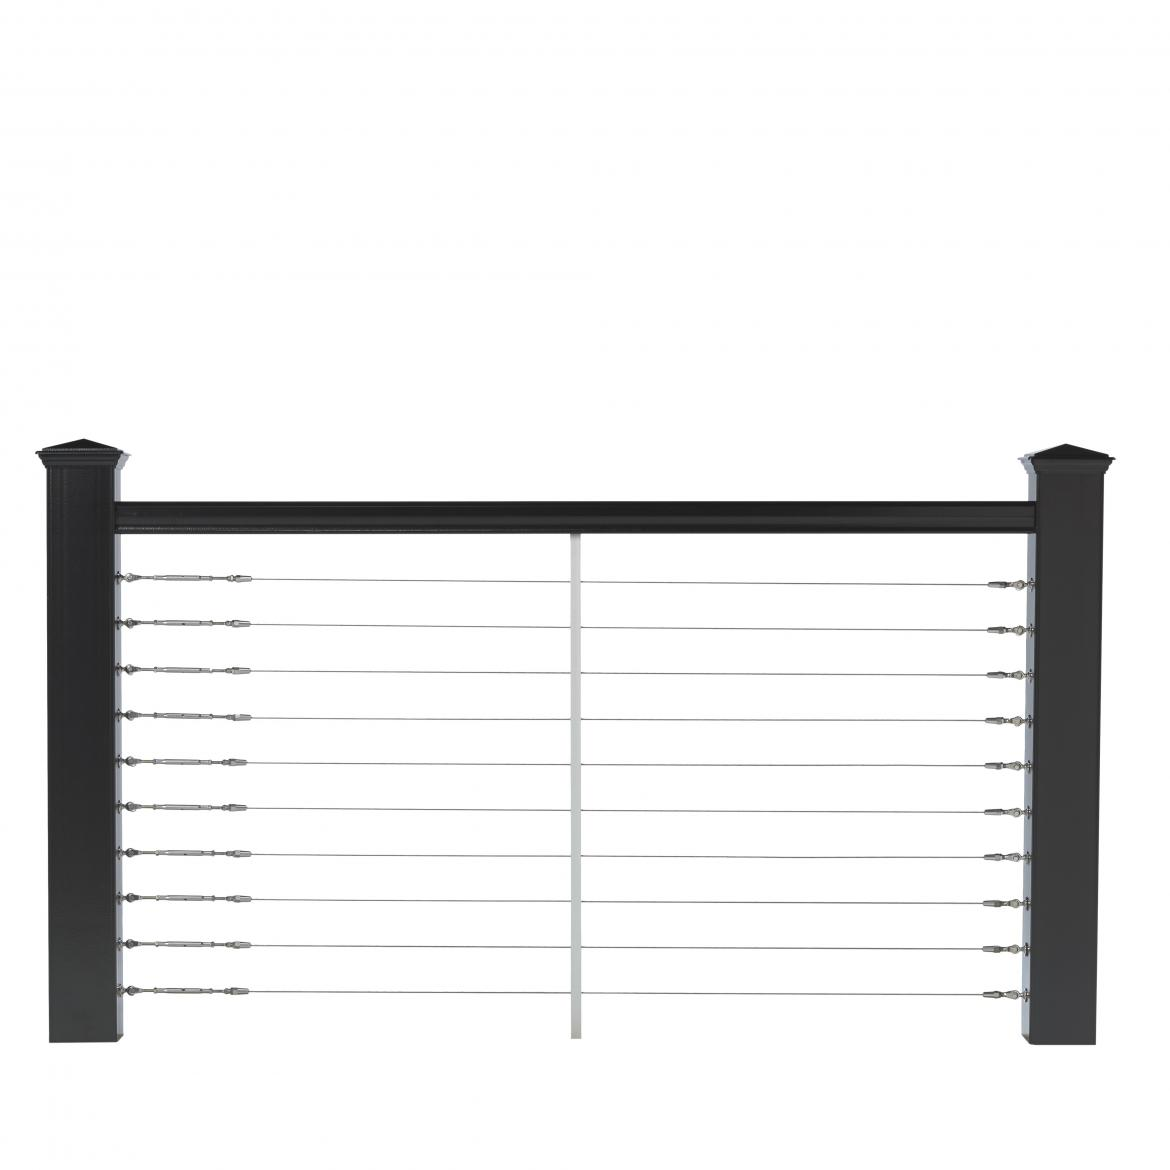 Deckorators cable railing in black